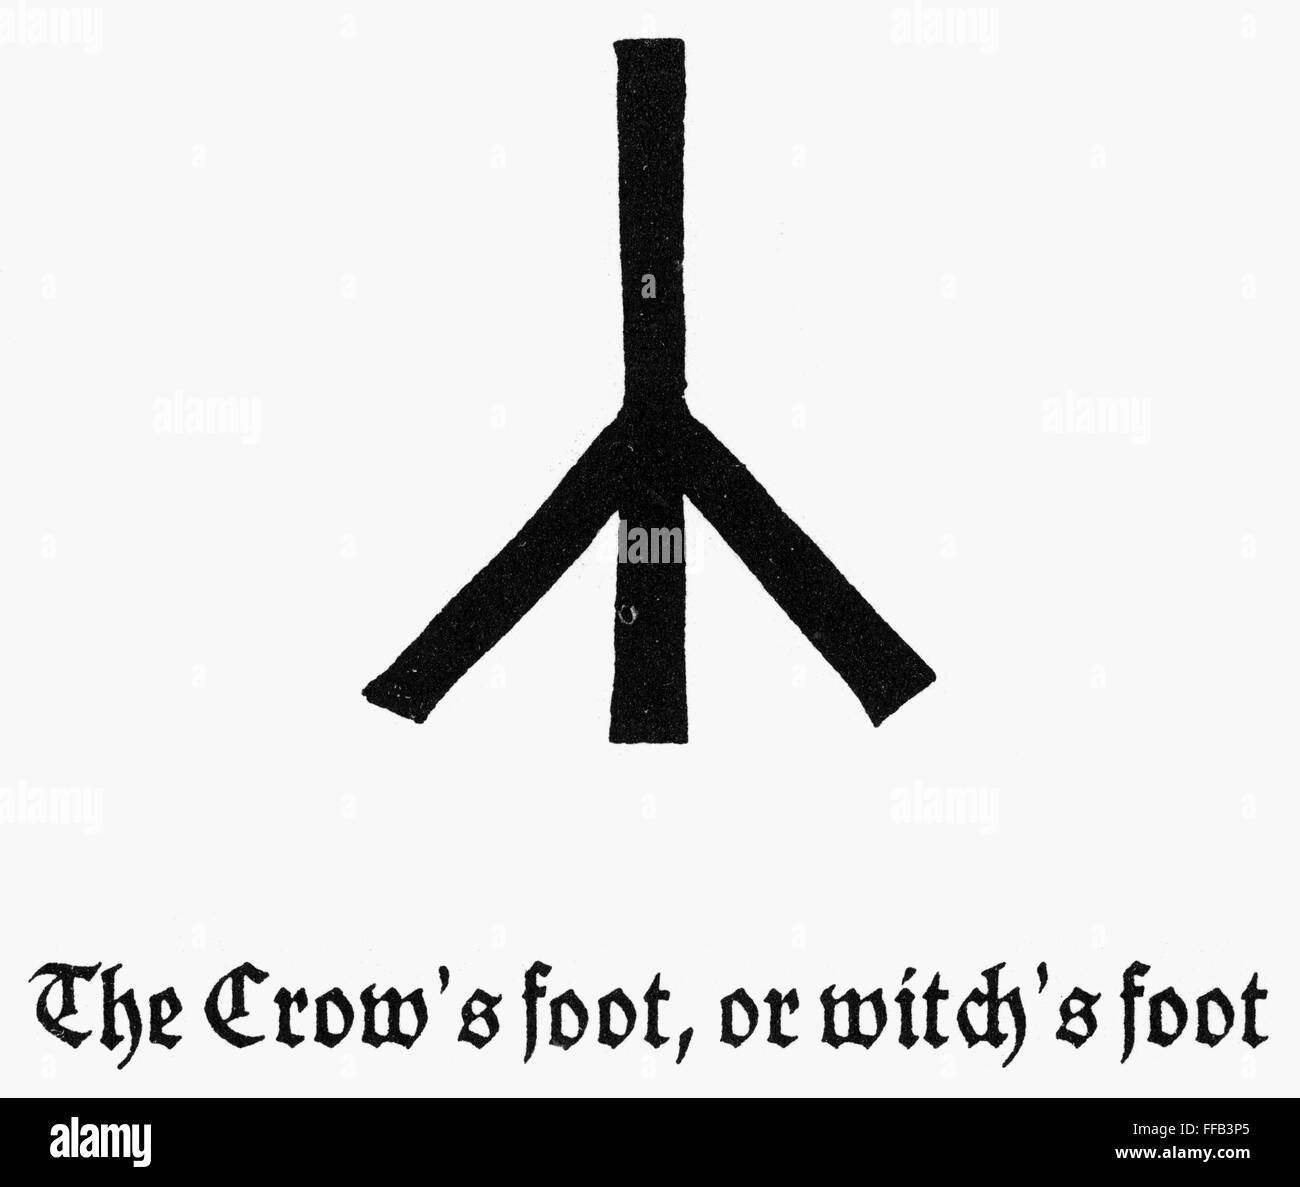 Symbols Crows Foot Ncrows Foot Or Witchs Foot German Stock